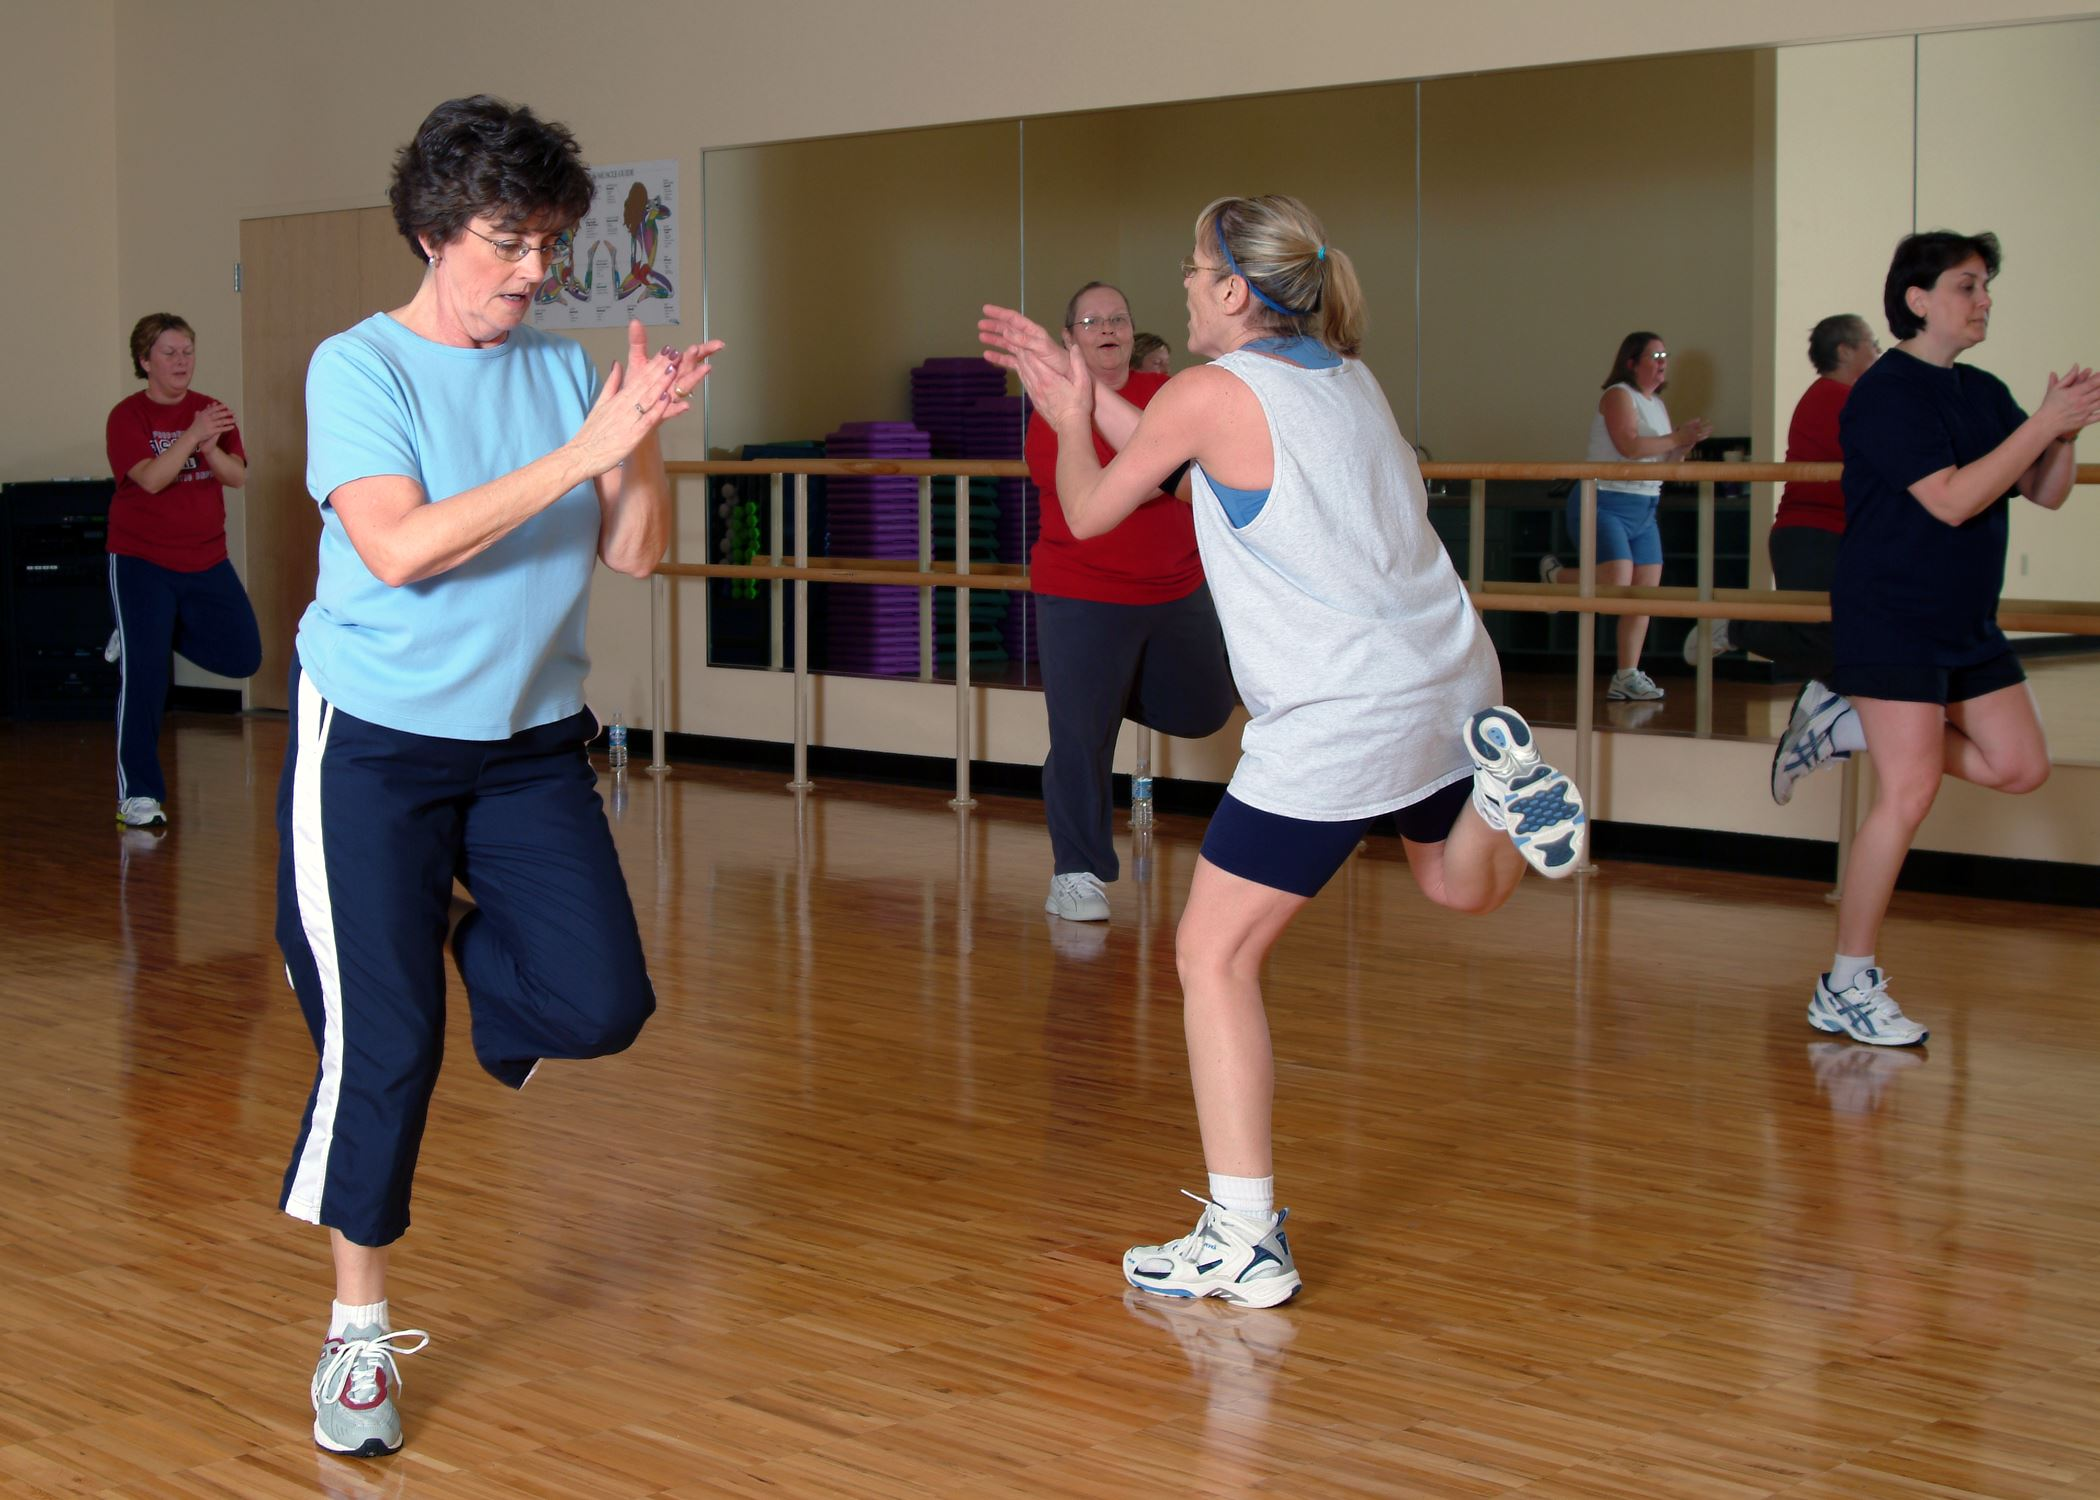 Women exercising together in the Recreation Center's Group Fitness Studio.